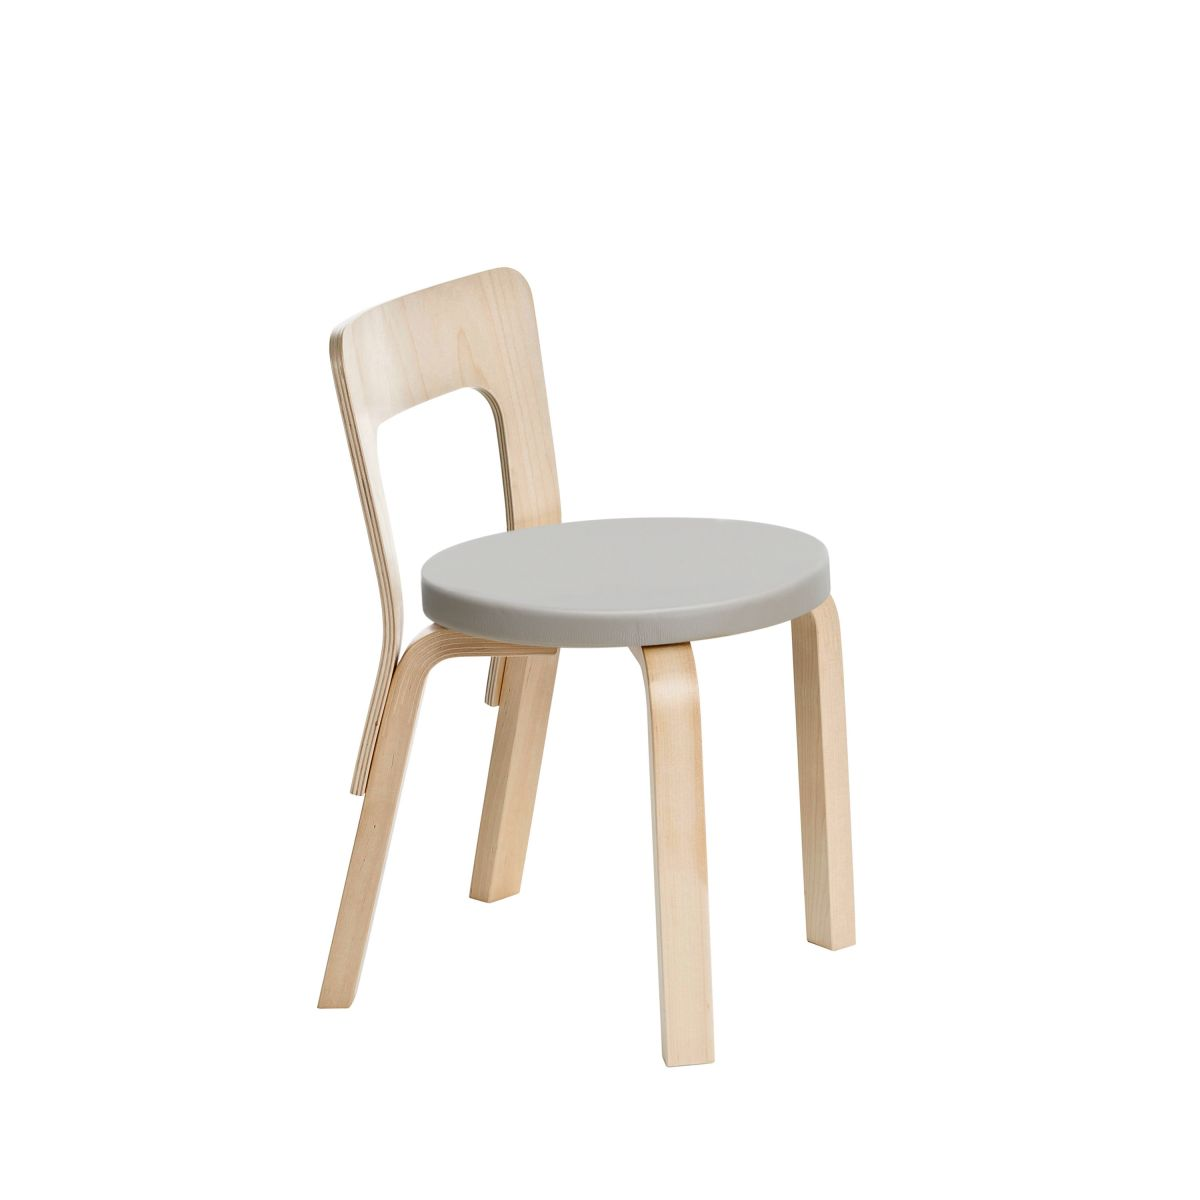 Children's Chair N65 legs birch_seat leather upholstery_F